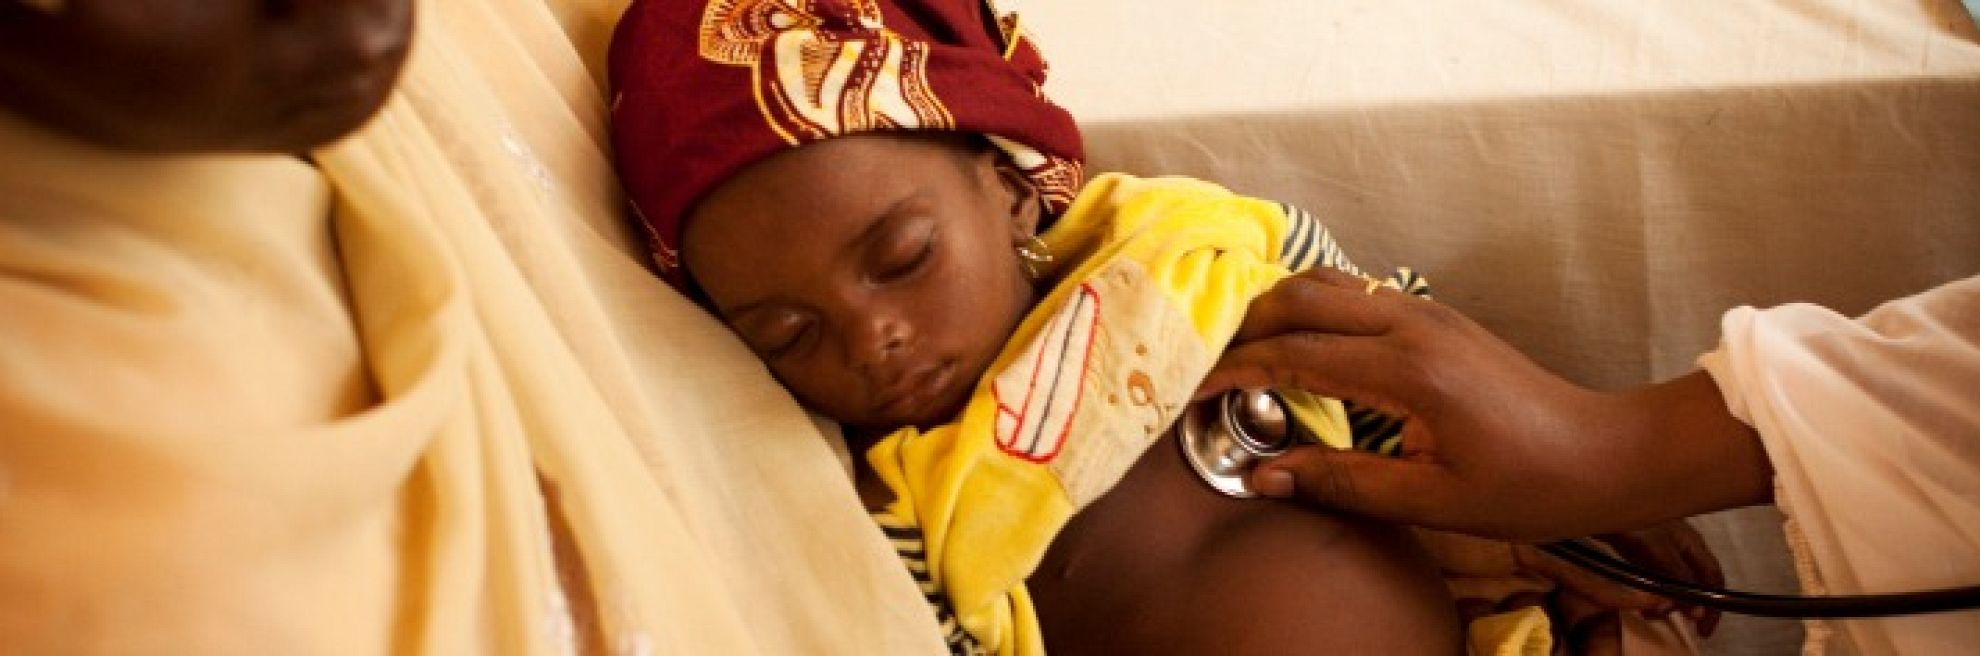 Latest News Malaria consortium adds its voice to the call to protect eu aid